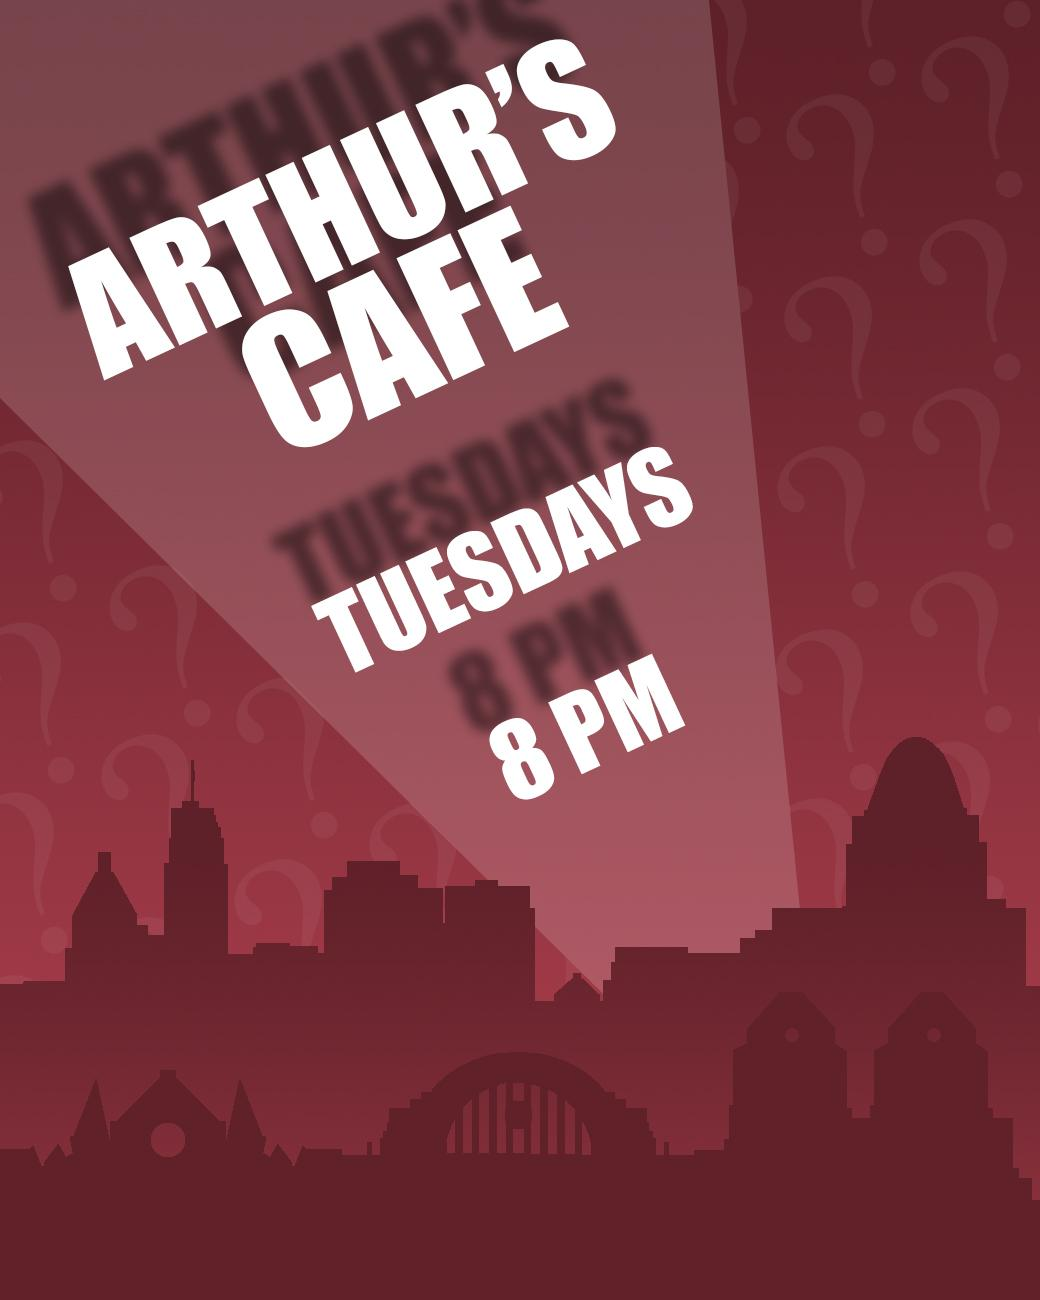 Arthur's Cafe has trivia every Tuesday starting at 8 PM. ADDRESS: 3516 Edward's Road (45208) / Image: Phil Armstrong, Cincinnati Refined // Published: 8.30.17